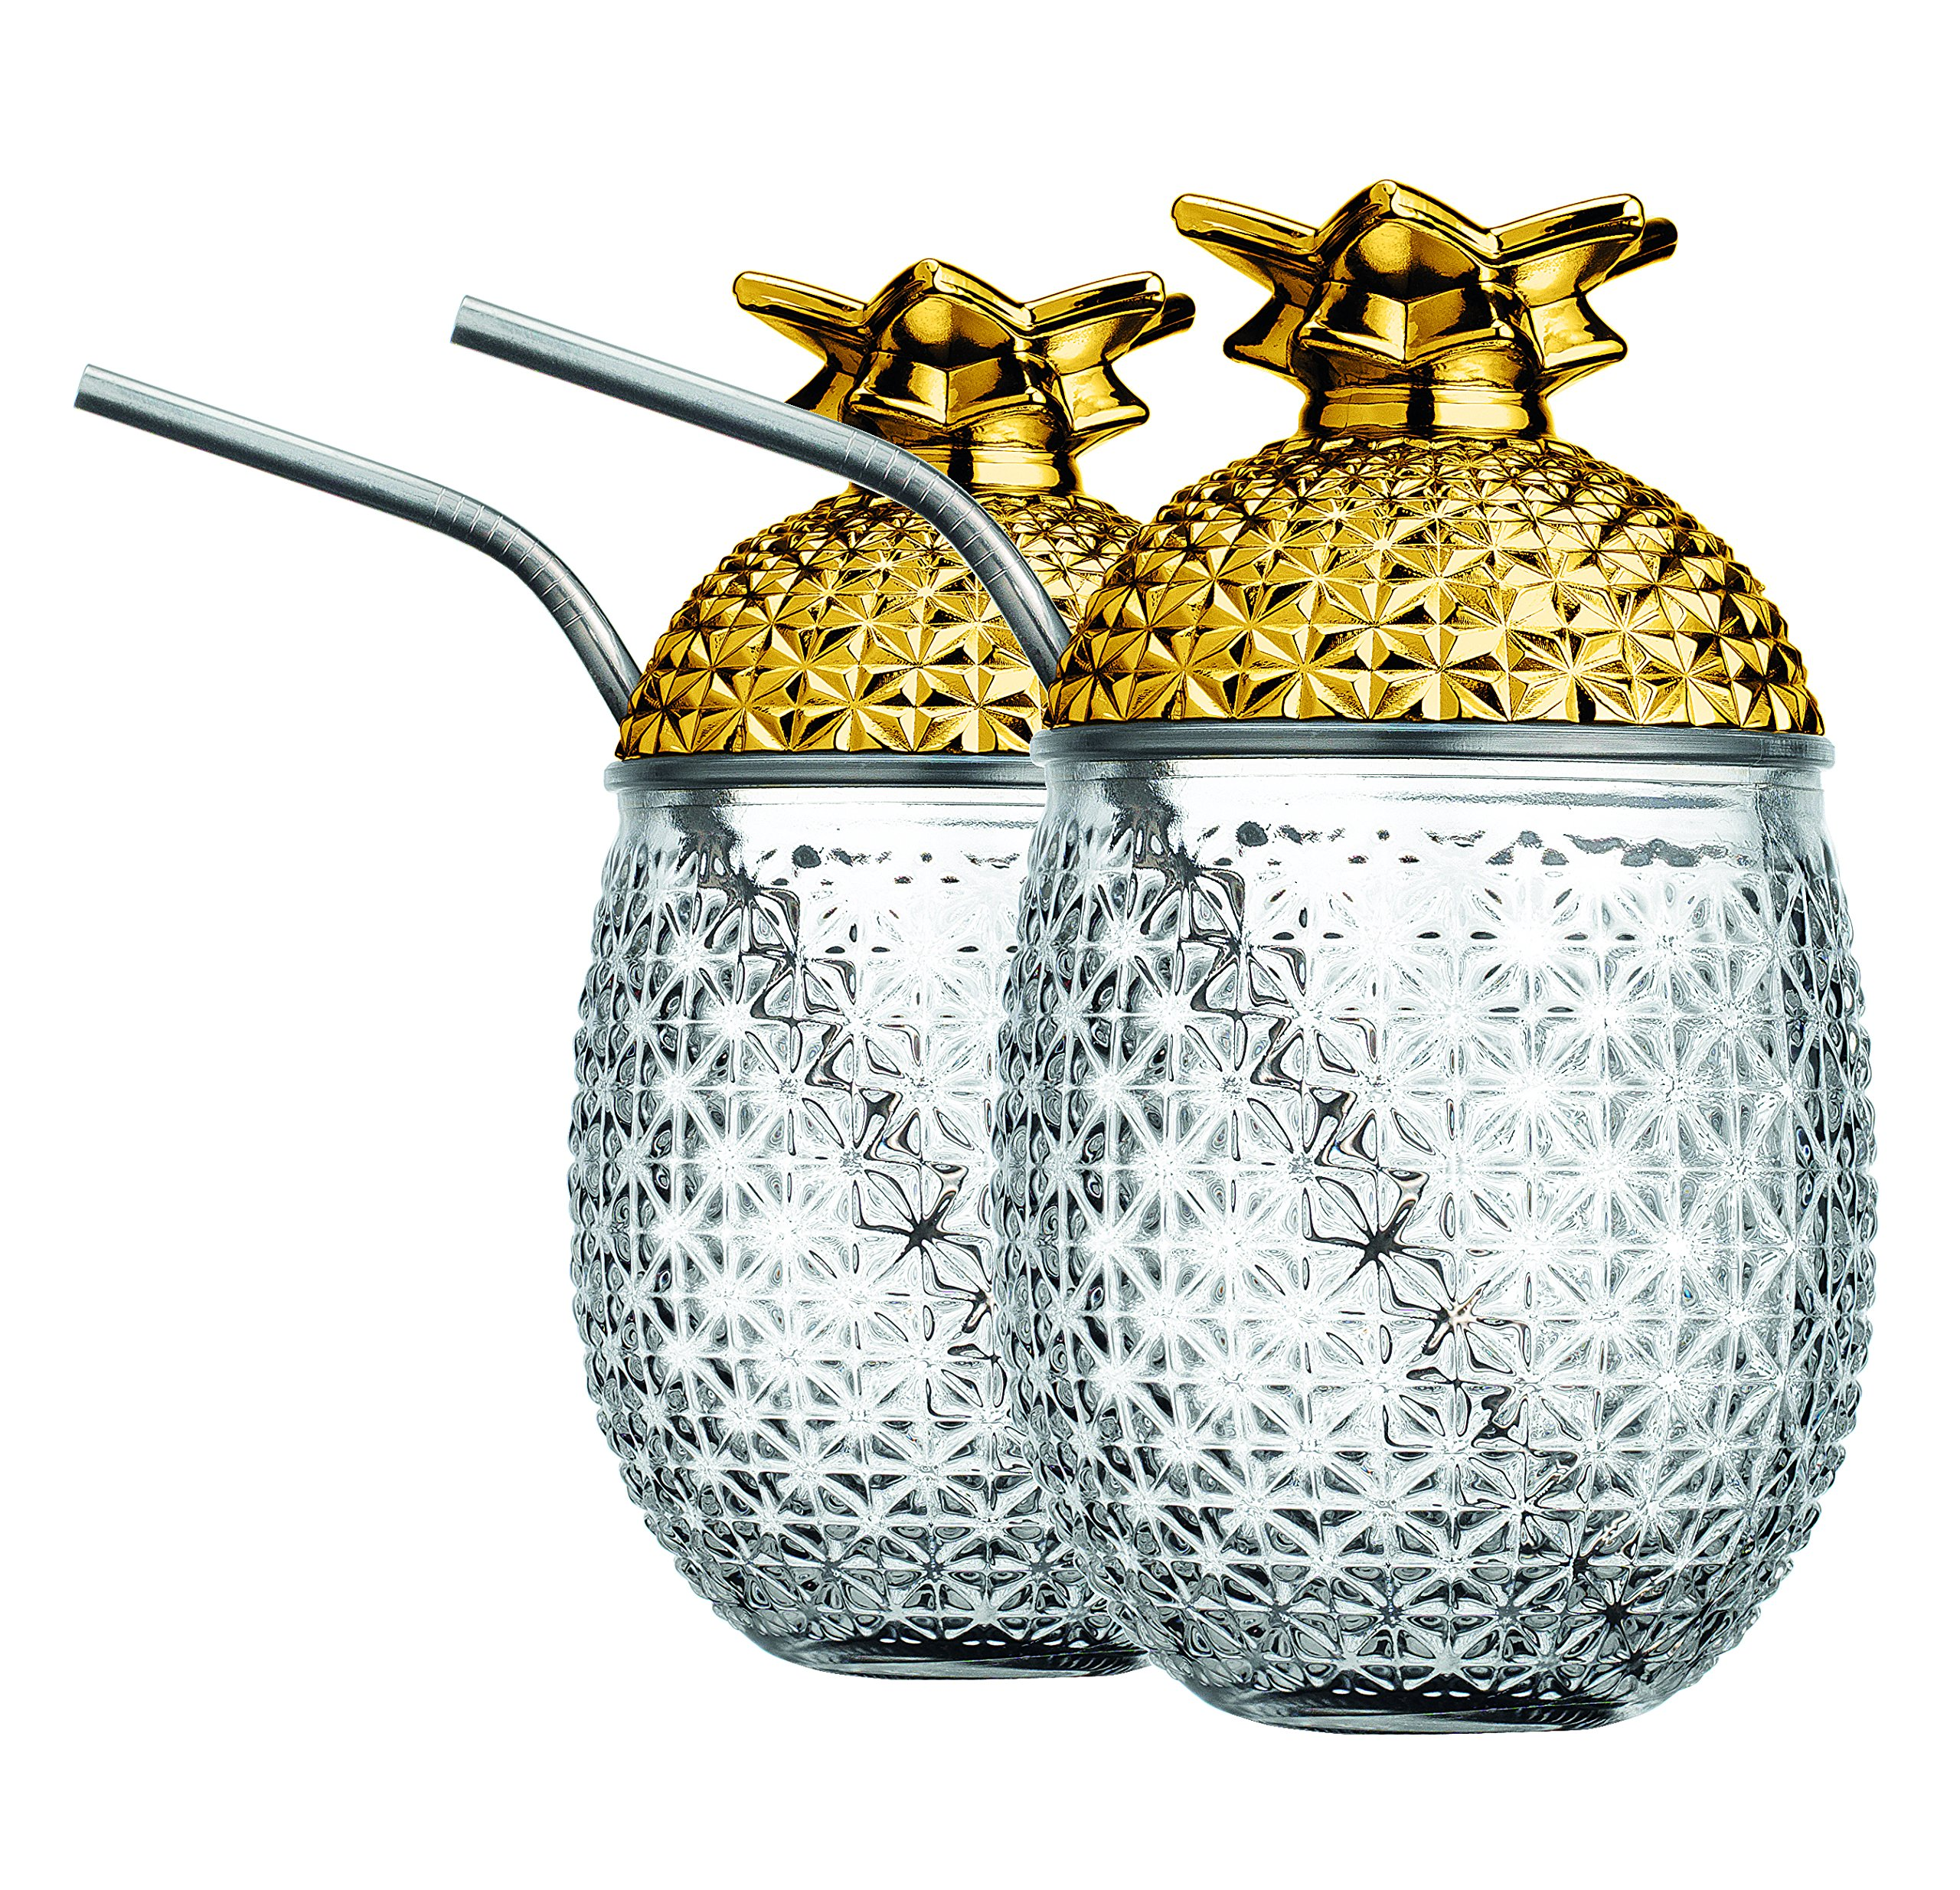 Glass Set of (2) Pineapple Cocktail Mug with Stainless Steel Straw Included, Gold Color Lid. Design, (20 Oz)